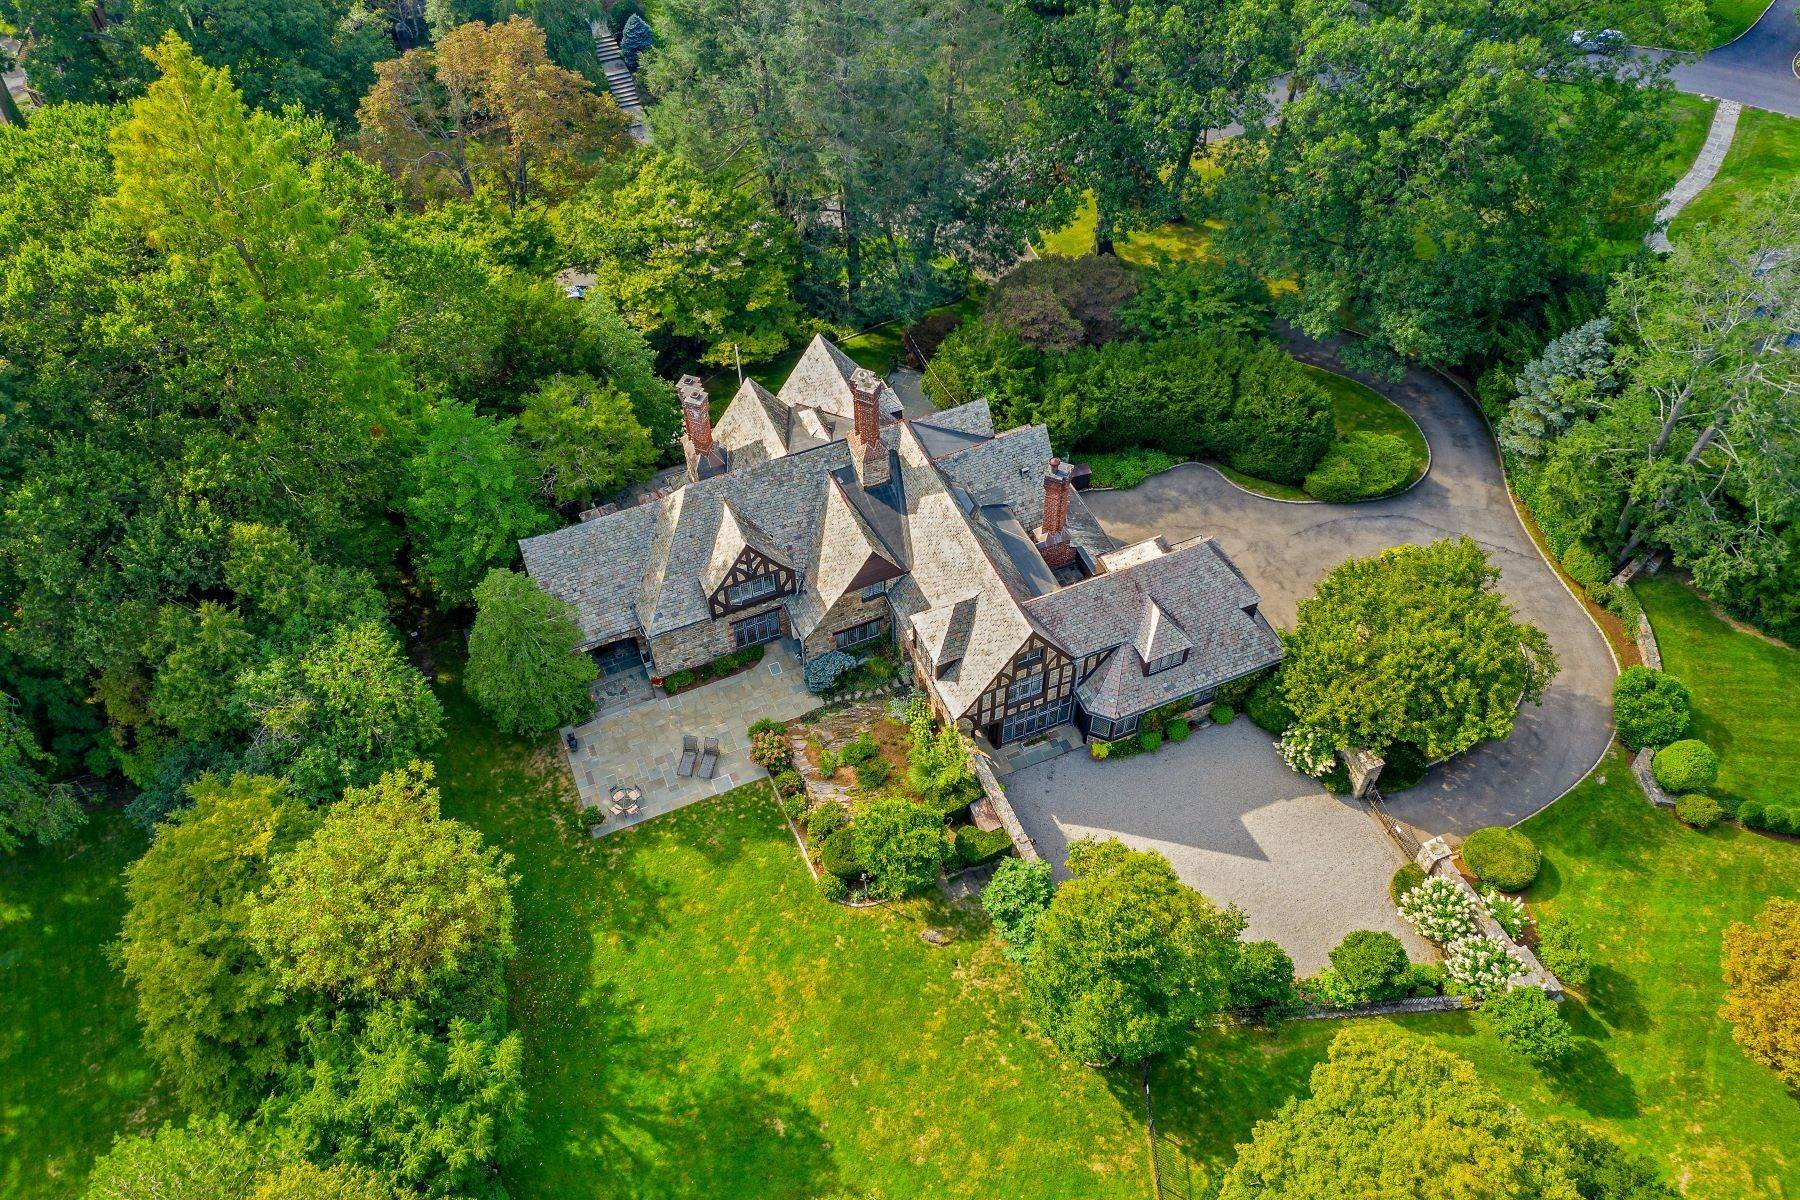 Single Family Homes for Sale at Welcome To 6 Beechwood Road 6 Beechwood Road Bronxville, New York 10708 United States